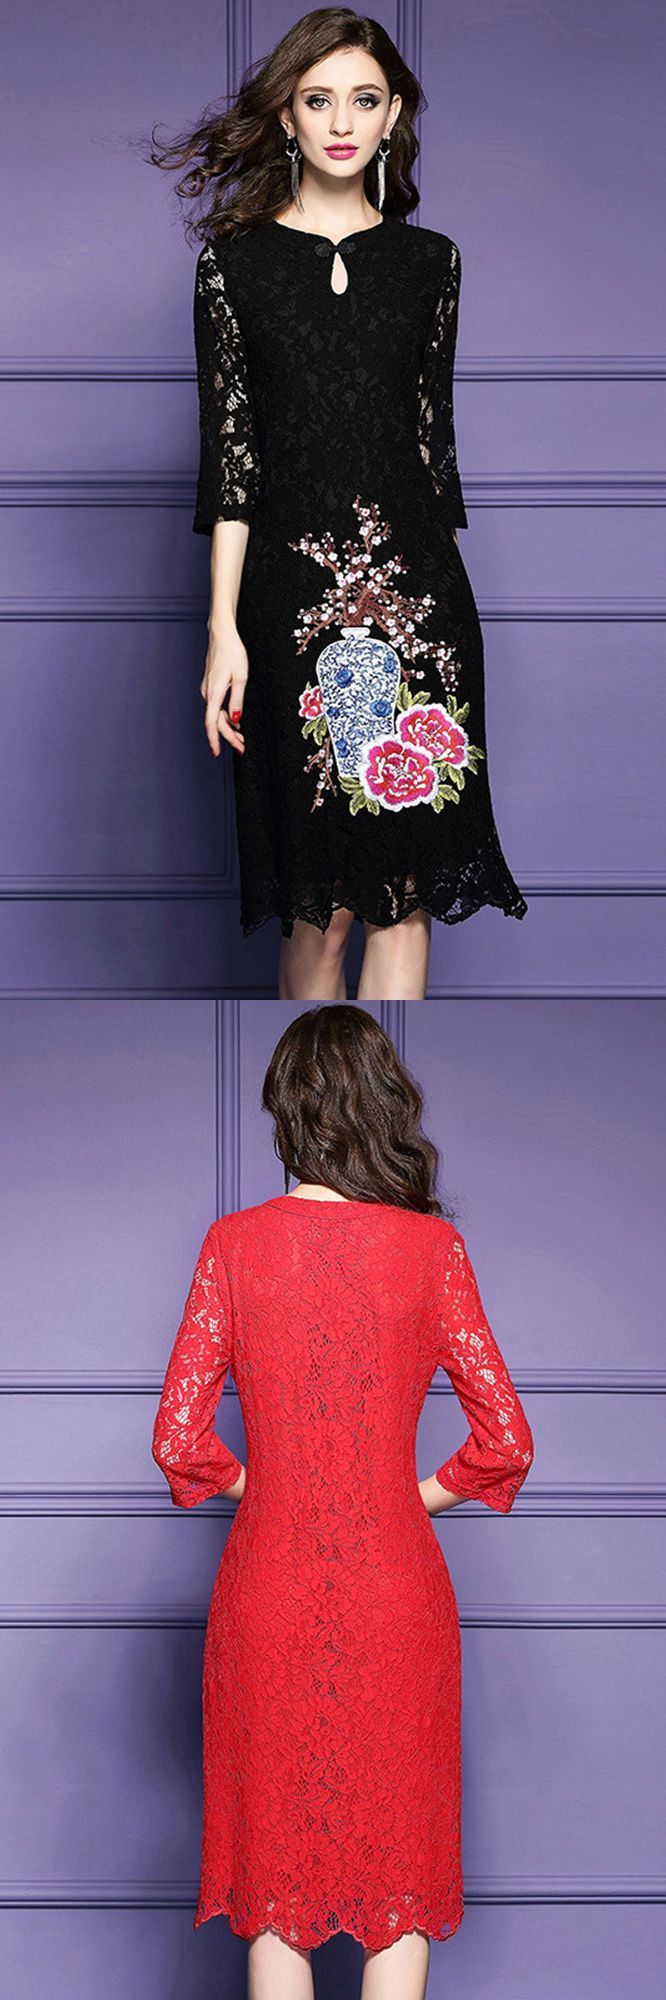 Red lace embroidery wedding guest dress for fall with lace sleeves